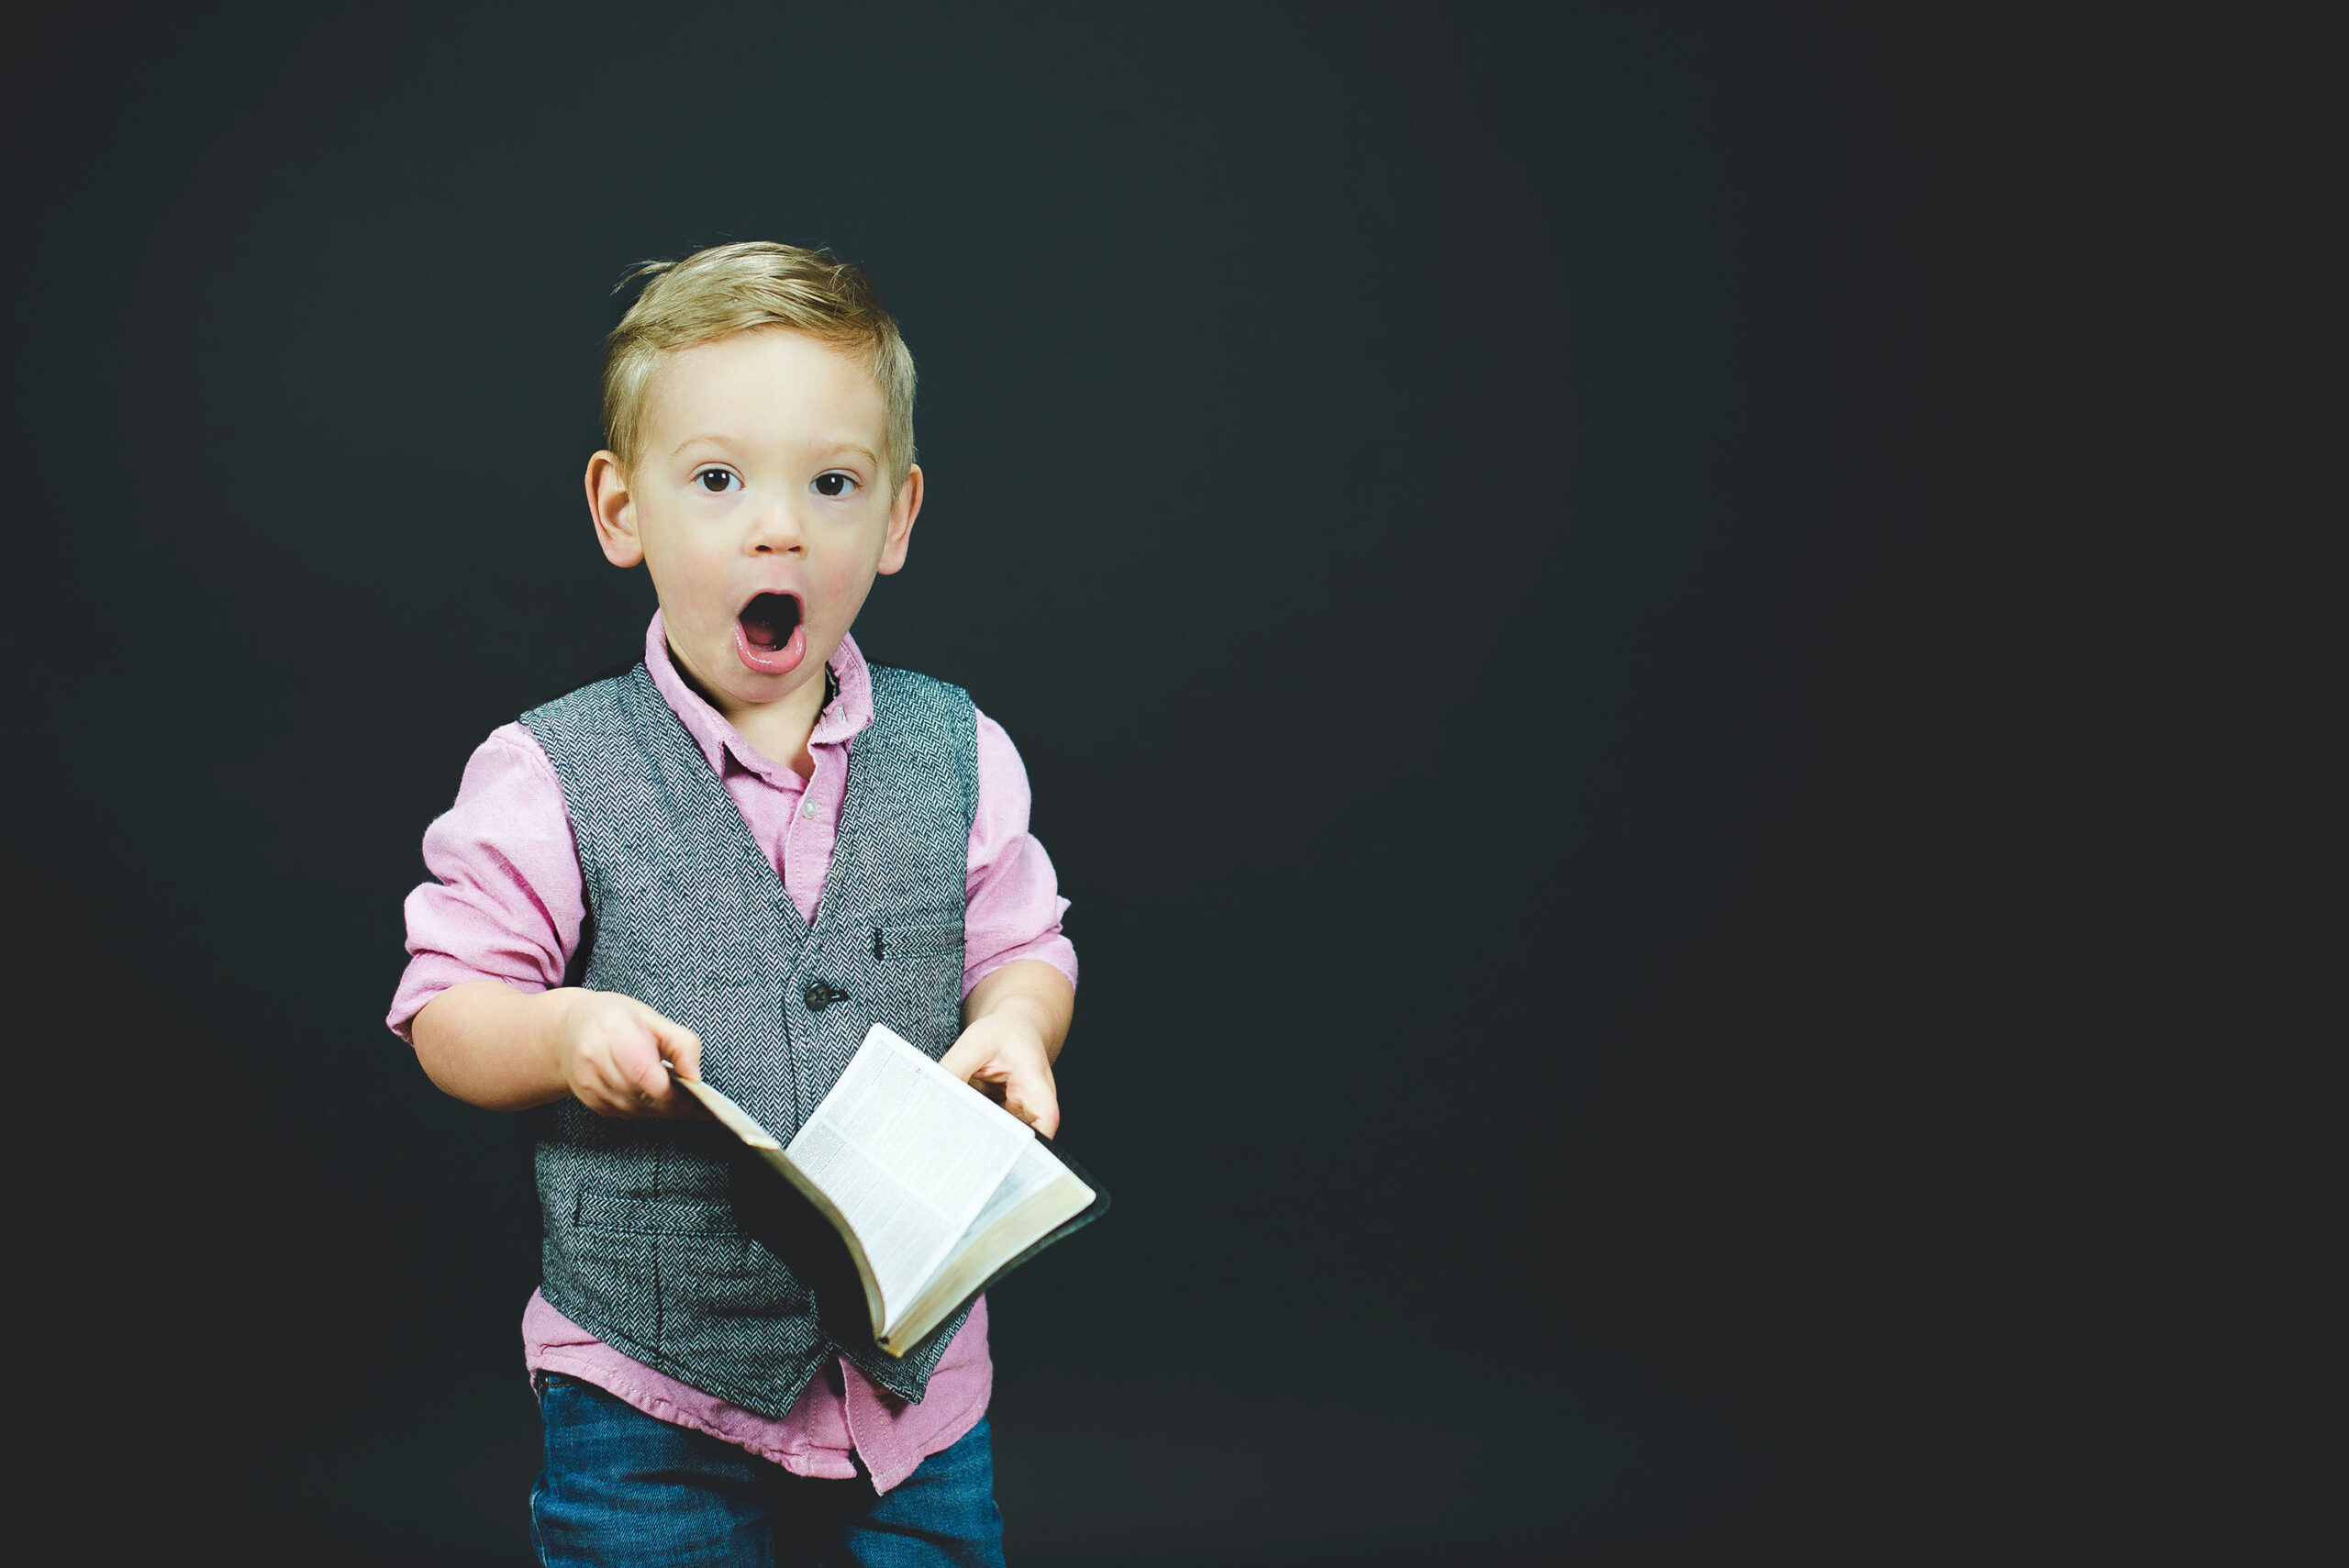 Picture of Boy with book in hands